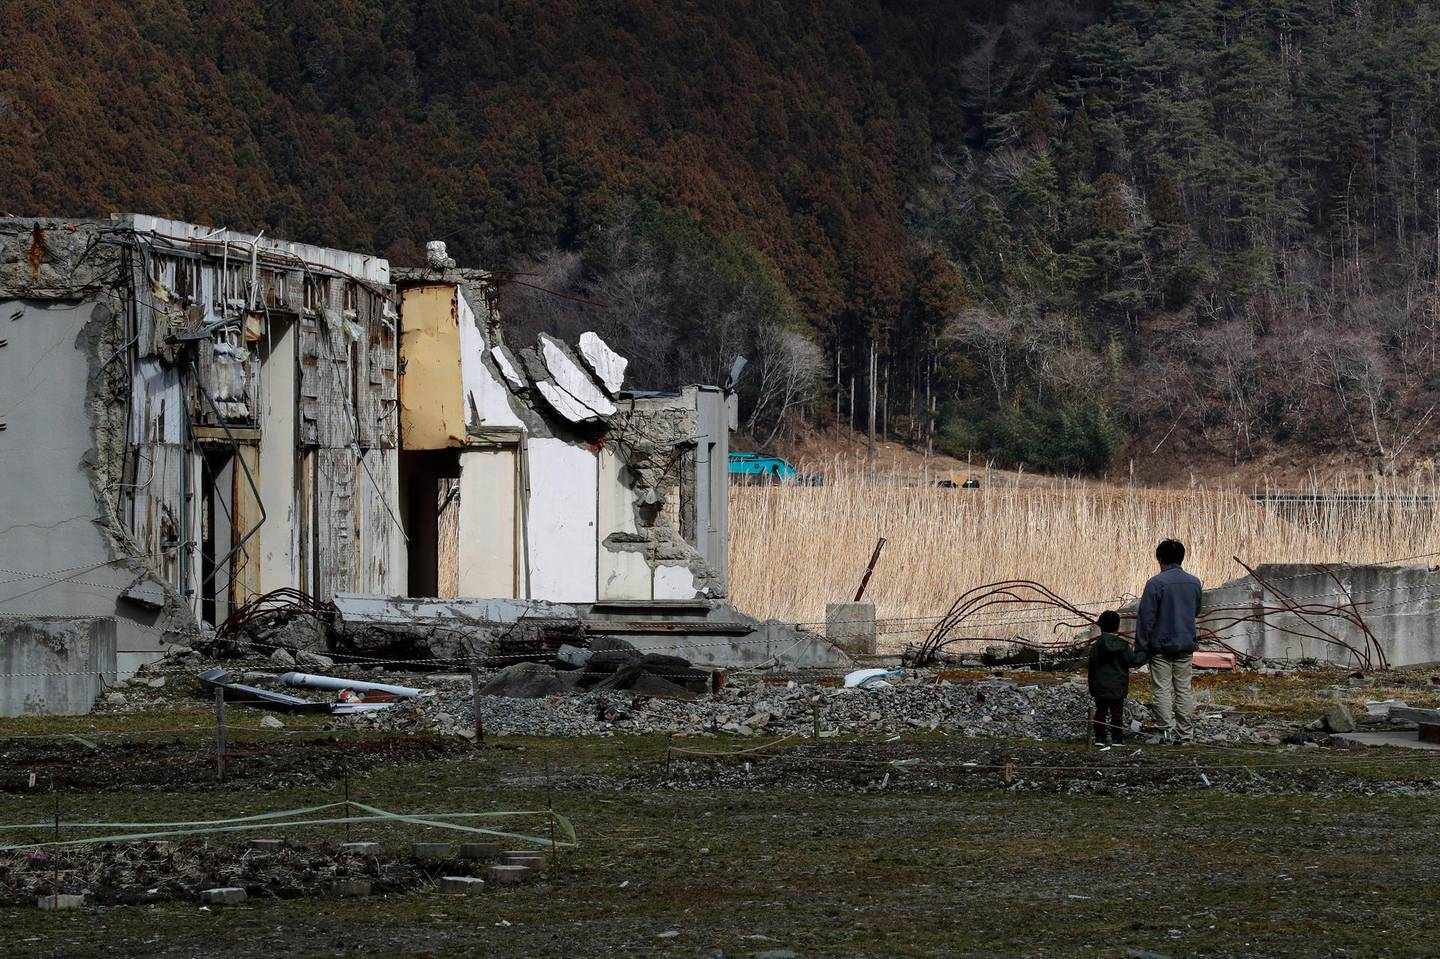 epa06593218 A boy and his father stand taking a moment at the remains of the Okawa Elementary School destroyed by the tsunami in Ishinomaki, Miyagi Prefecture, 10 March 2018, the eve of the seventh anniversary of the 9.0-magnitude earthquake and subsequent tsunami. In the school, 74 students and 10 teachers were killed by the tsunami following the magnitude 9.0 earthquake on the way of their evacuation. The seventh anniversary of the 9.0-magnitude earthquake and subsequent tsunami that devastated northeastern Japan and triggered a nuclear disaster at Tokyo Electric Power Company's Fukushima Daiichi Nuclear Power Plant will be marked on 11 March 2018.  EPA/KIMIMASA MAYAMA